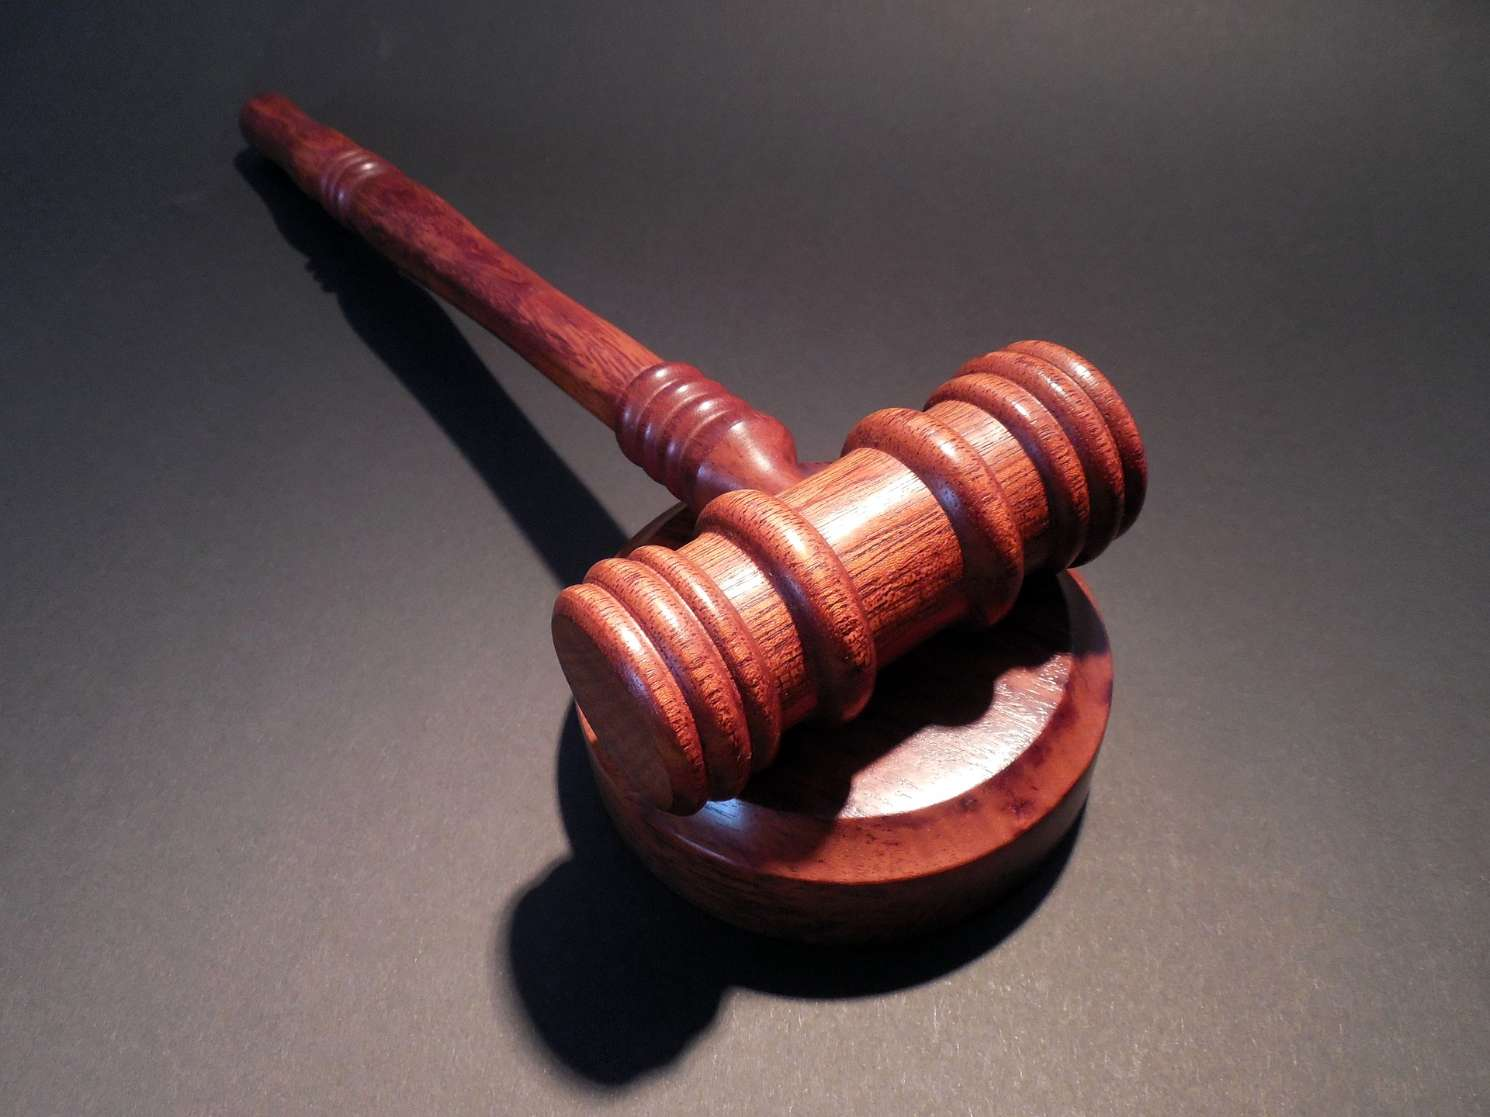 HIRING A MADISON, WI OWI ATTORNEY